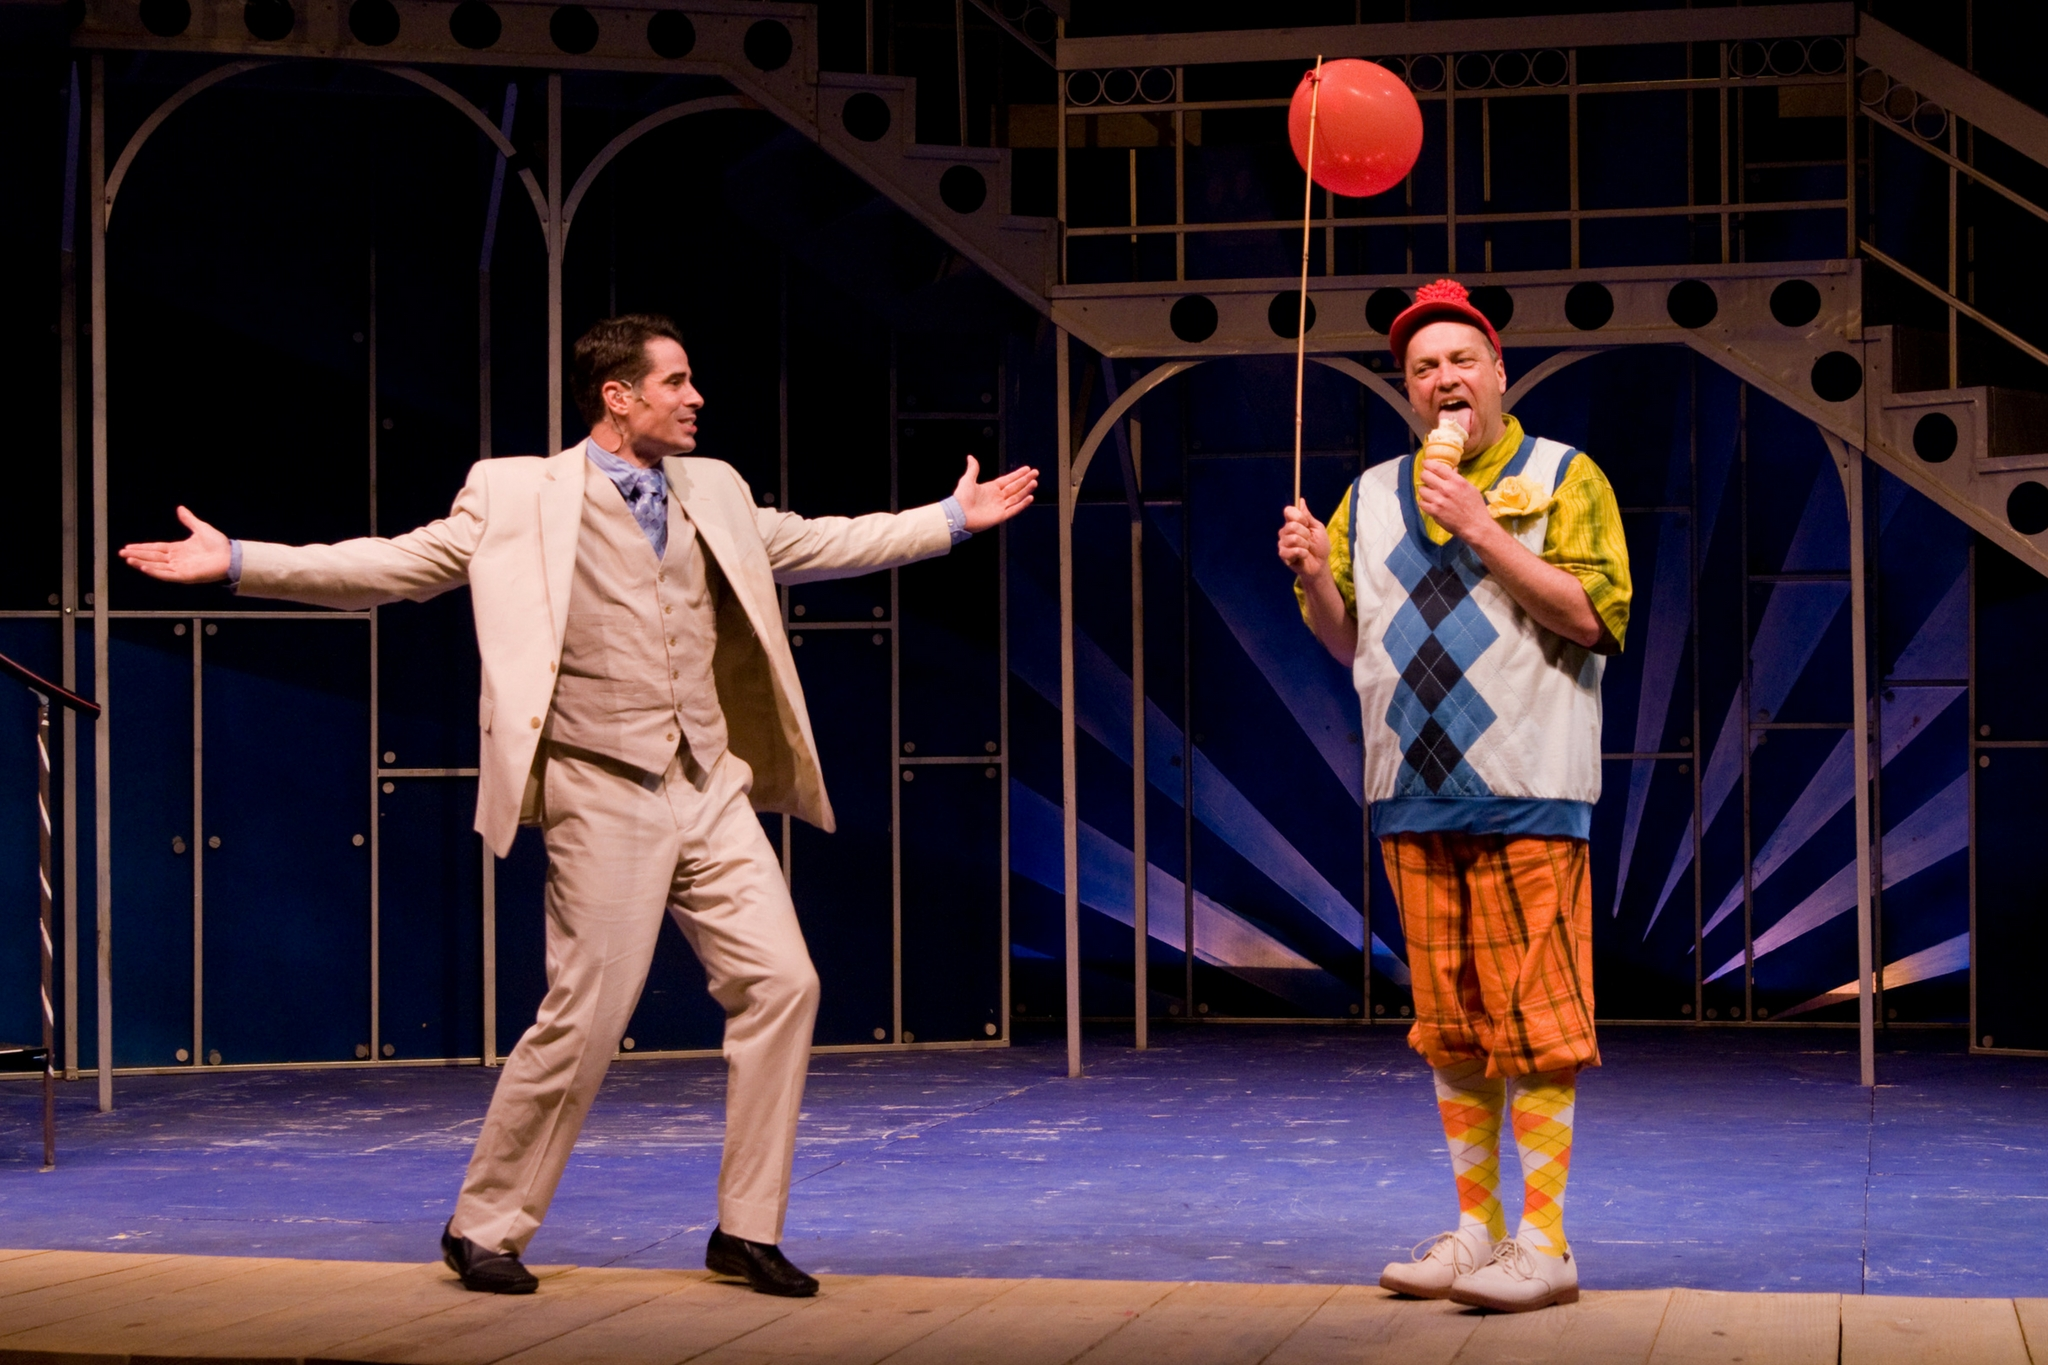 Dan Roach (Antipholus of Syracuse) and Larry Coen (Dromio of Syracuse) in The Comedy of Errors, Shakespeare on the Common 2009-Photo by Andrew Brilliant